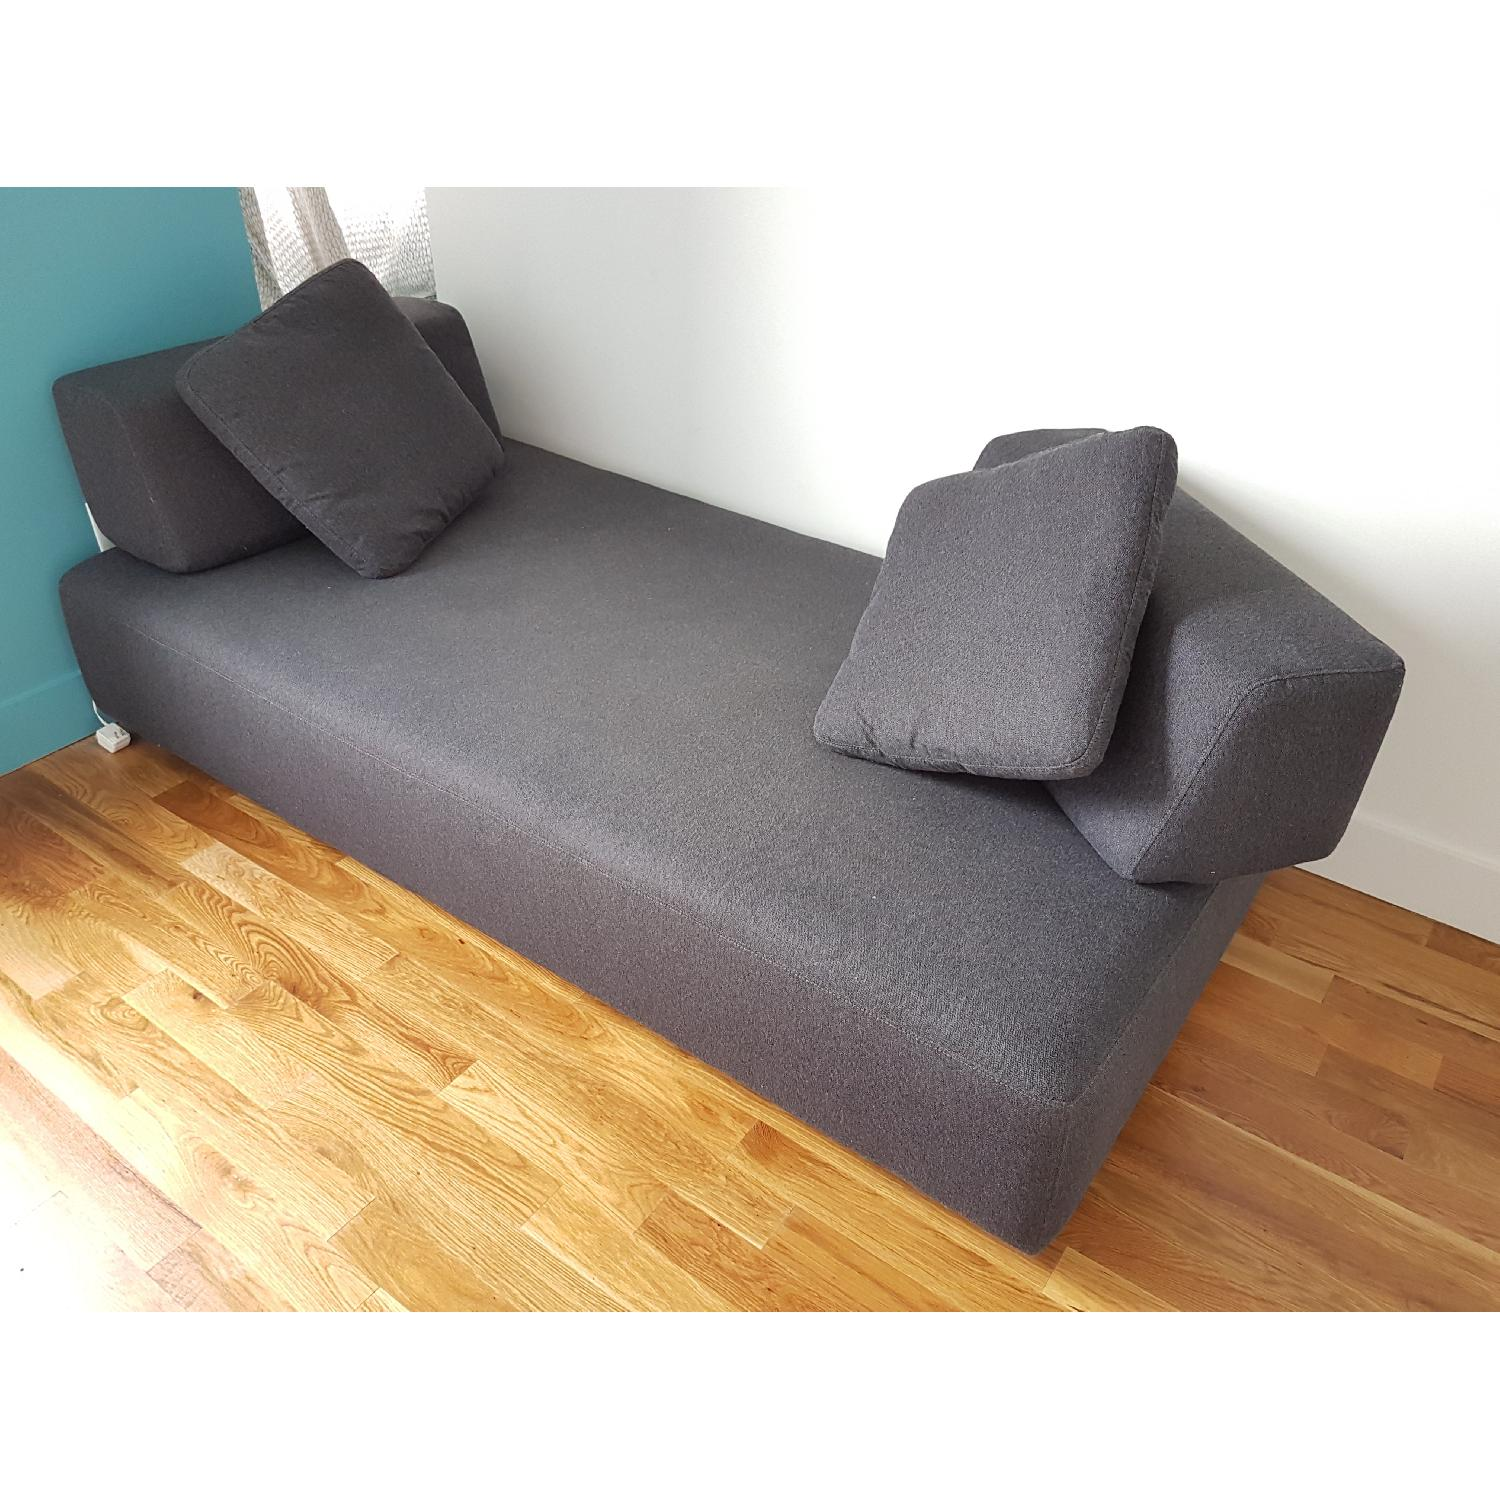 Mobilia Cross Functional Couch/Bed - image-3